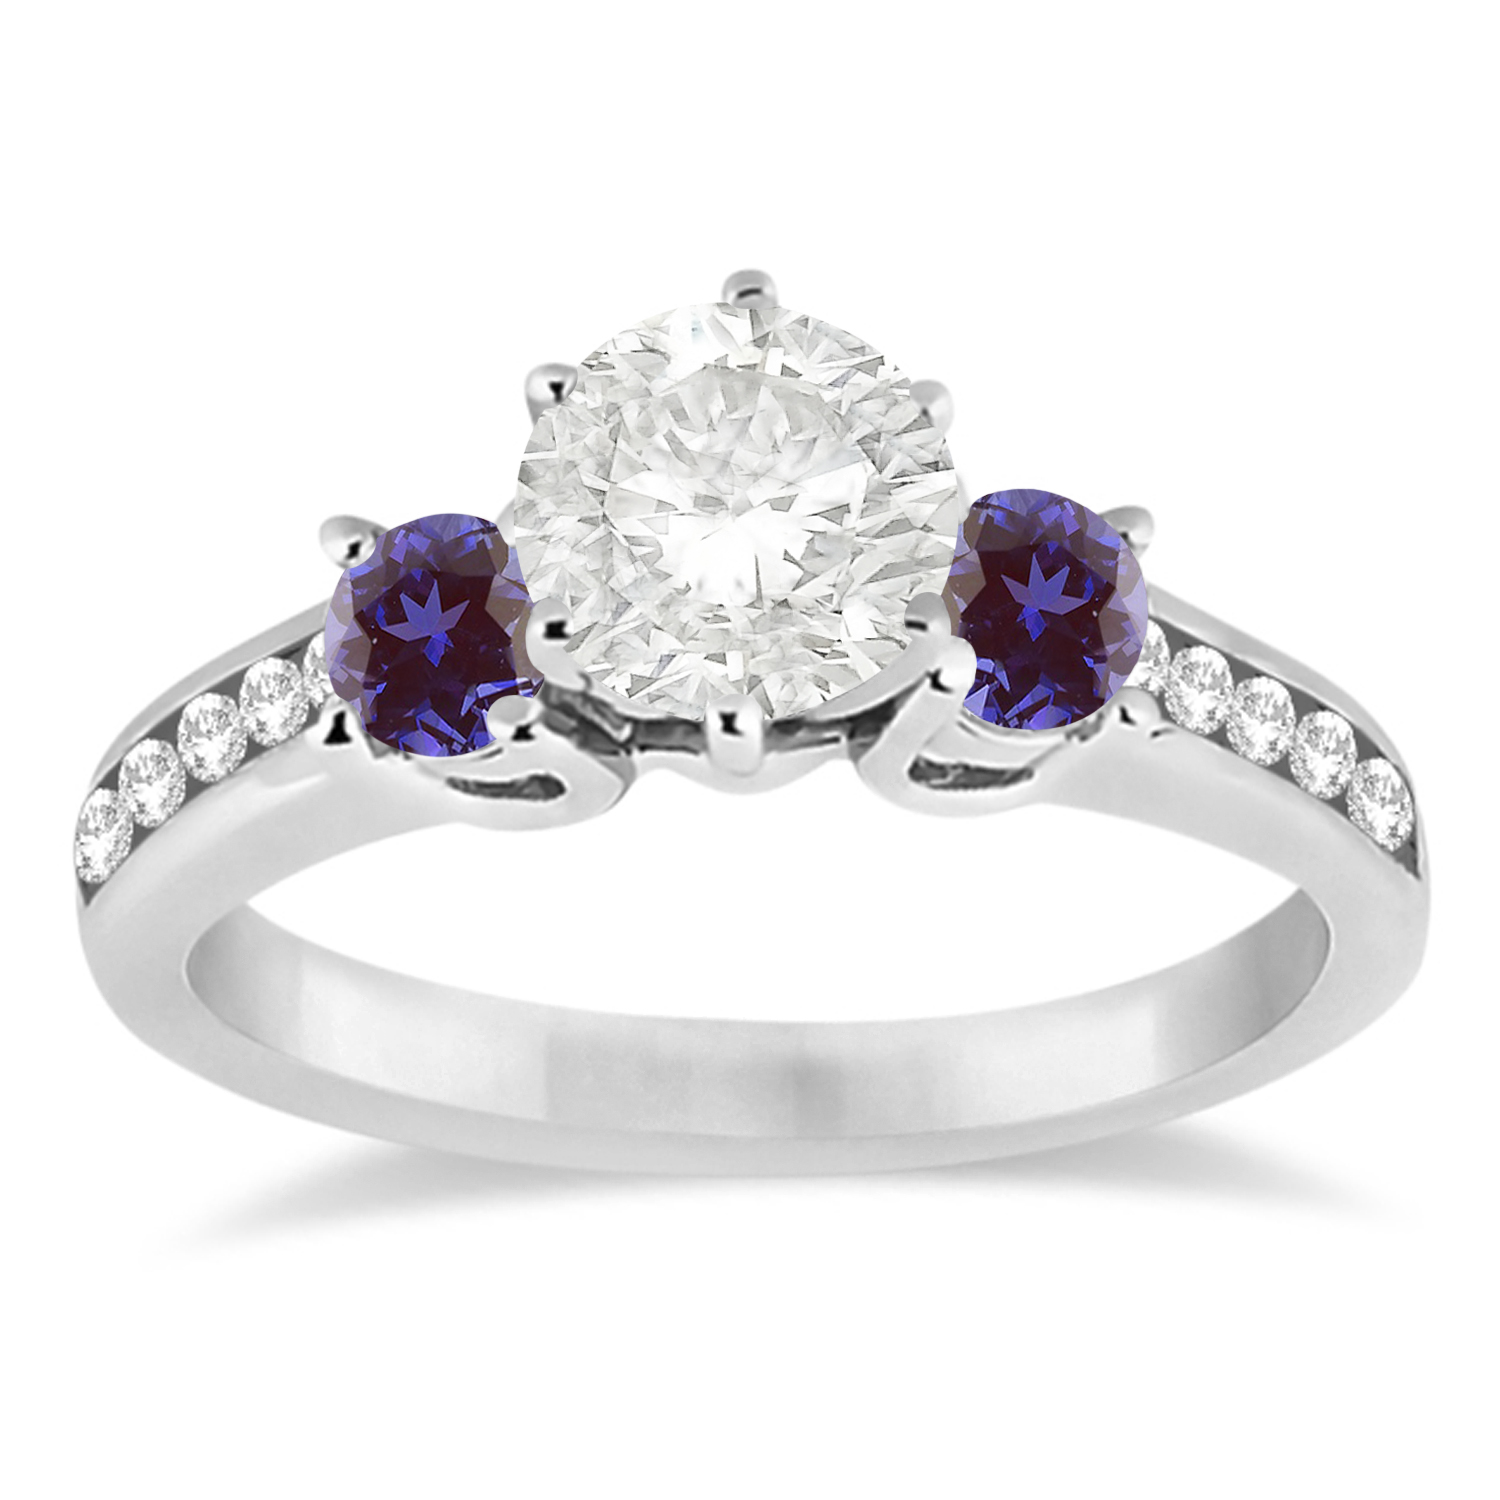 Three-Stone Diamond Engagement Ring with Lab Alexandrites in 18k White Gold (0.45 ctw)